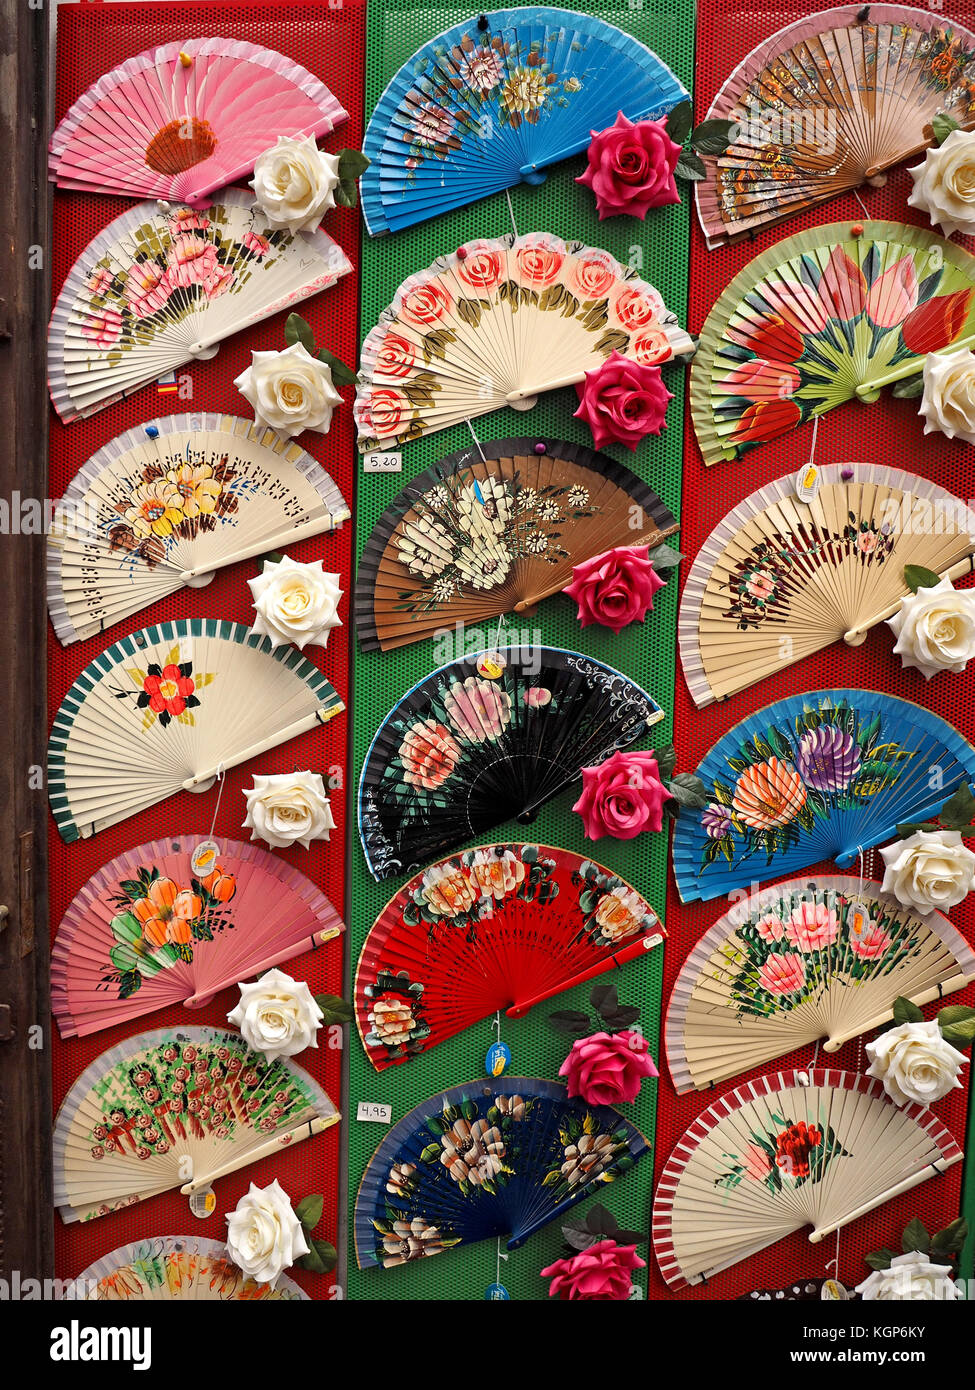 Display of colourful colorful Flamenco Spanish folding fans interspersed with red and white roses in Córdoba, - Stock Image